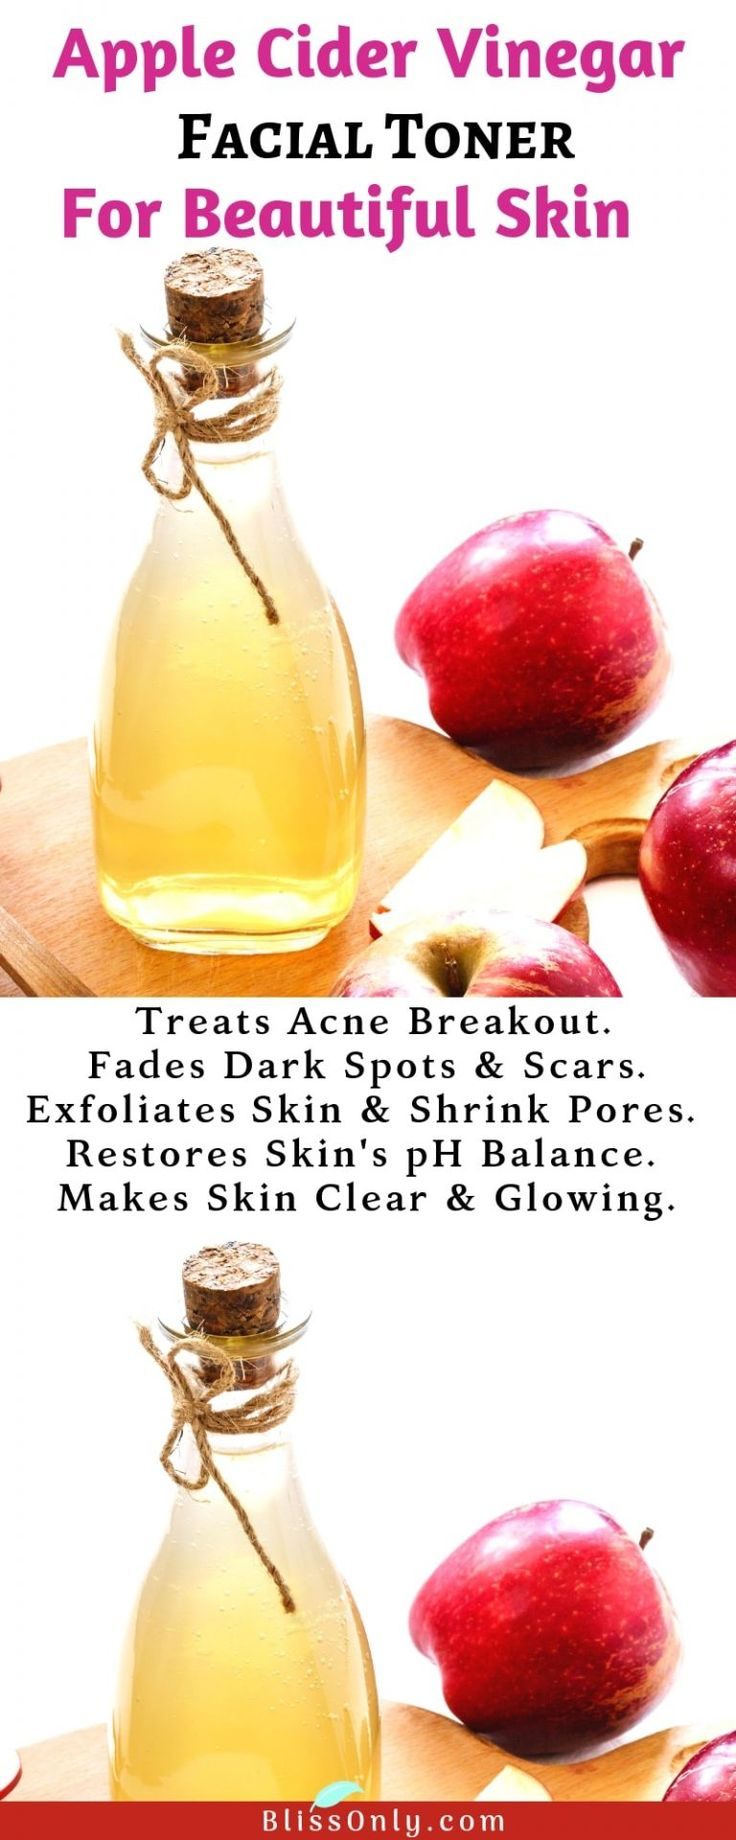 DIY Apple Cider Vinegar Face Toner